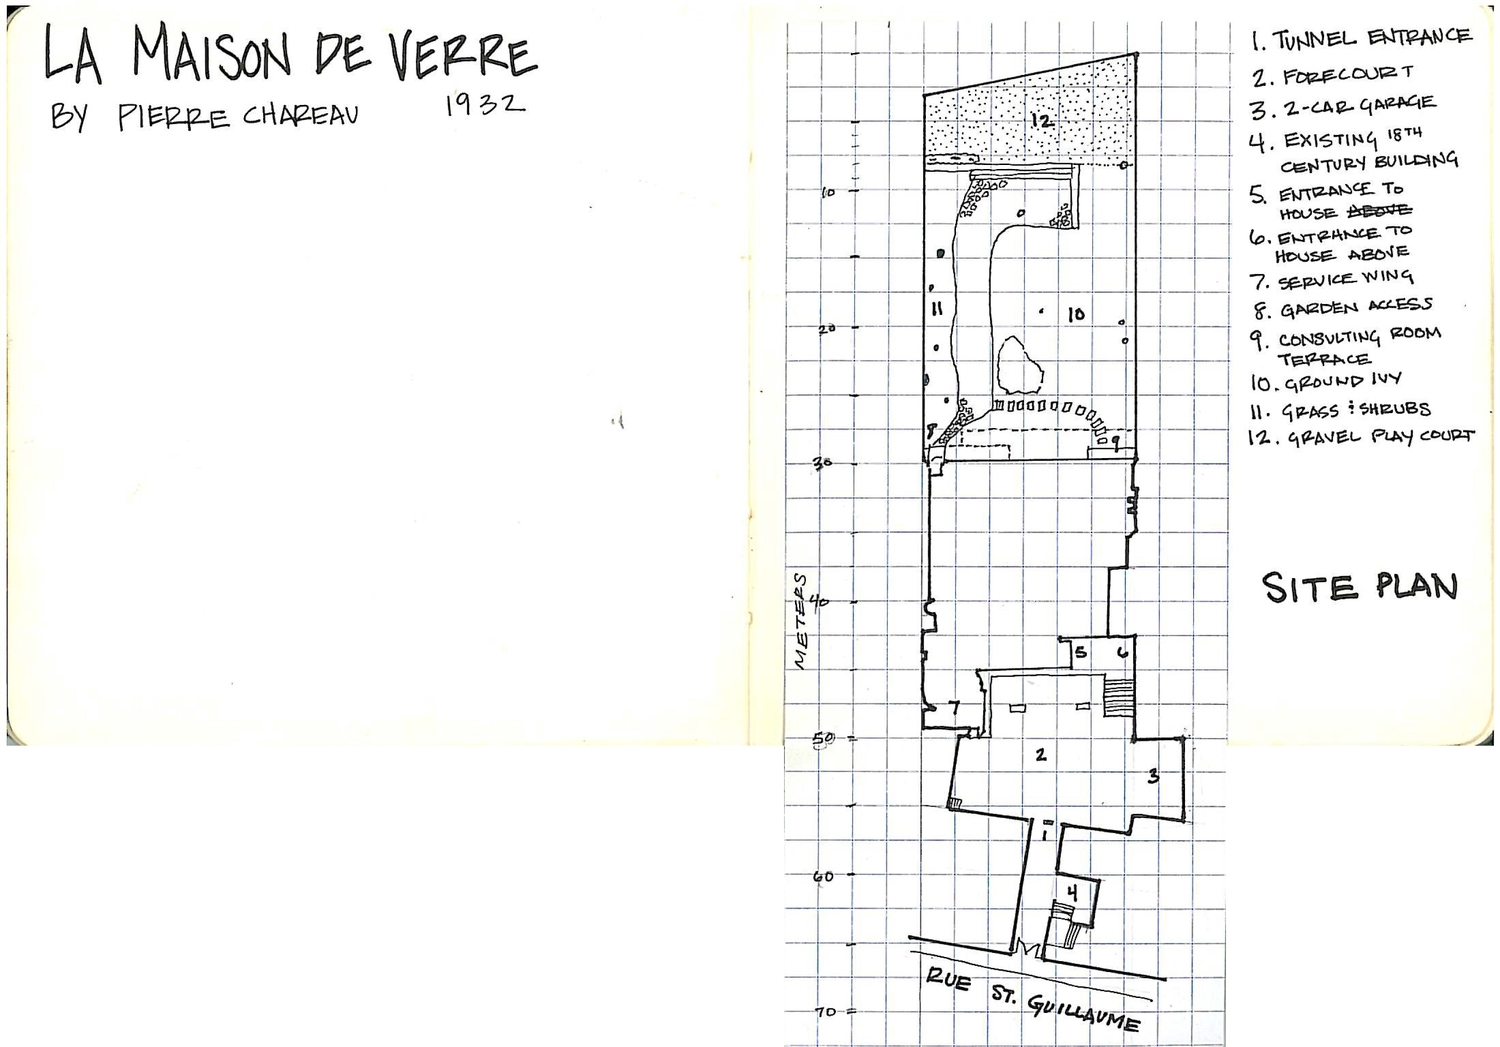 I copied these plans into my sketch book prior to our tour and took notes as I went through.